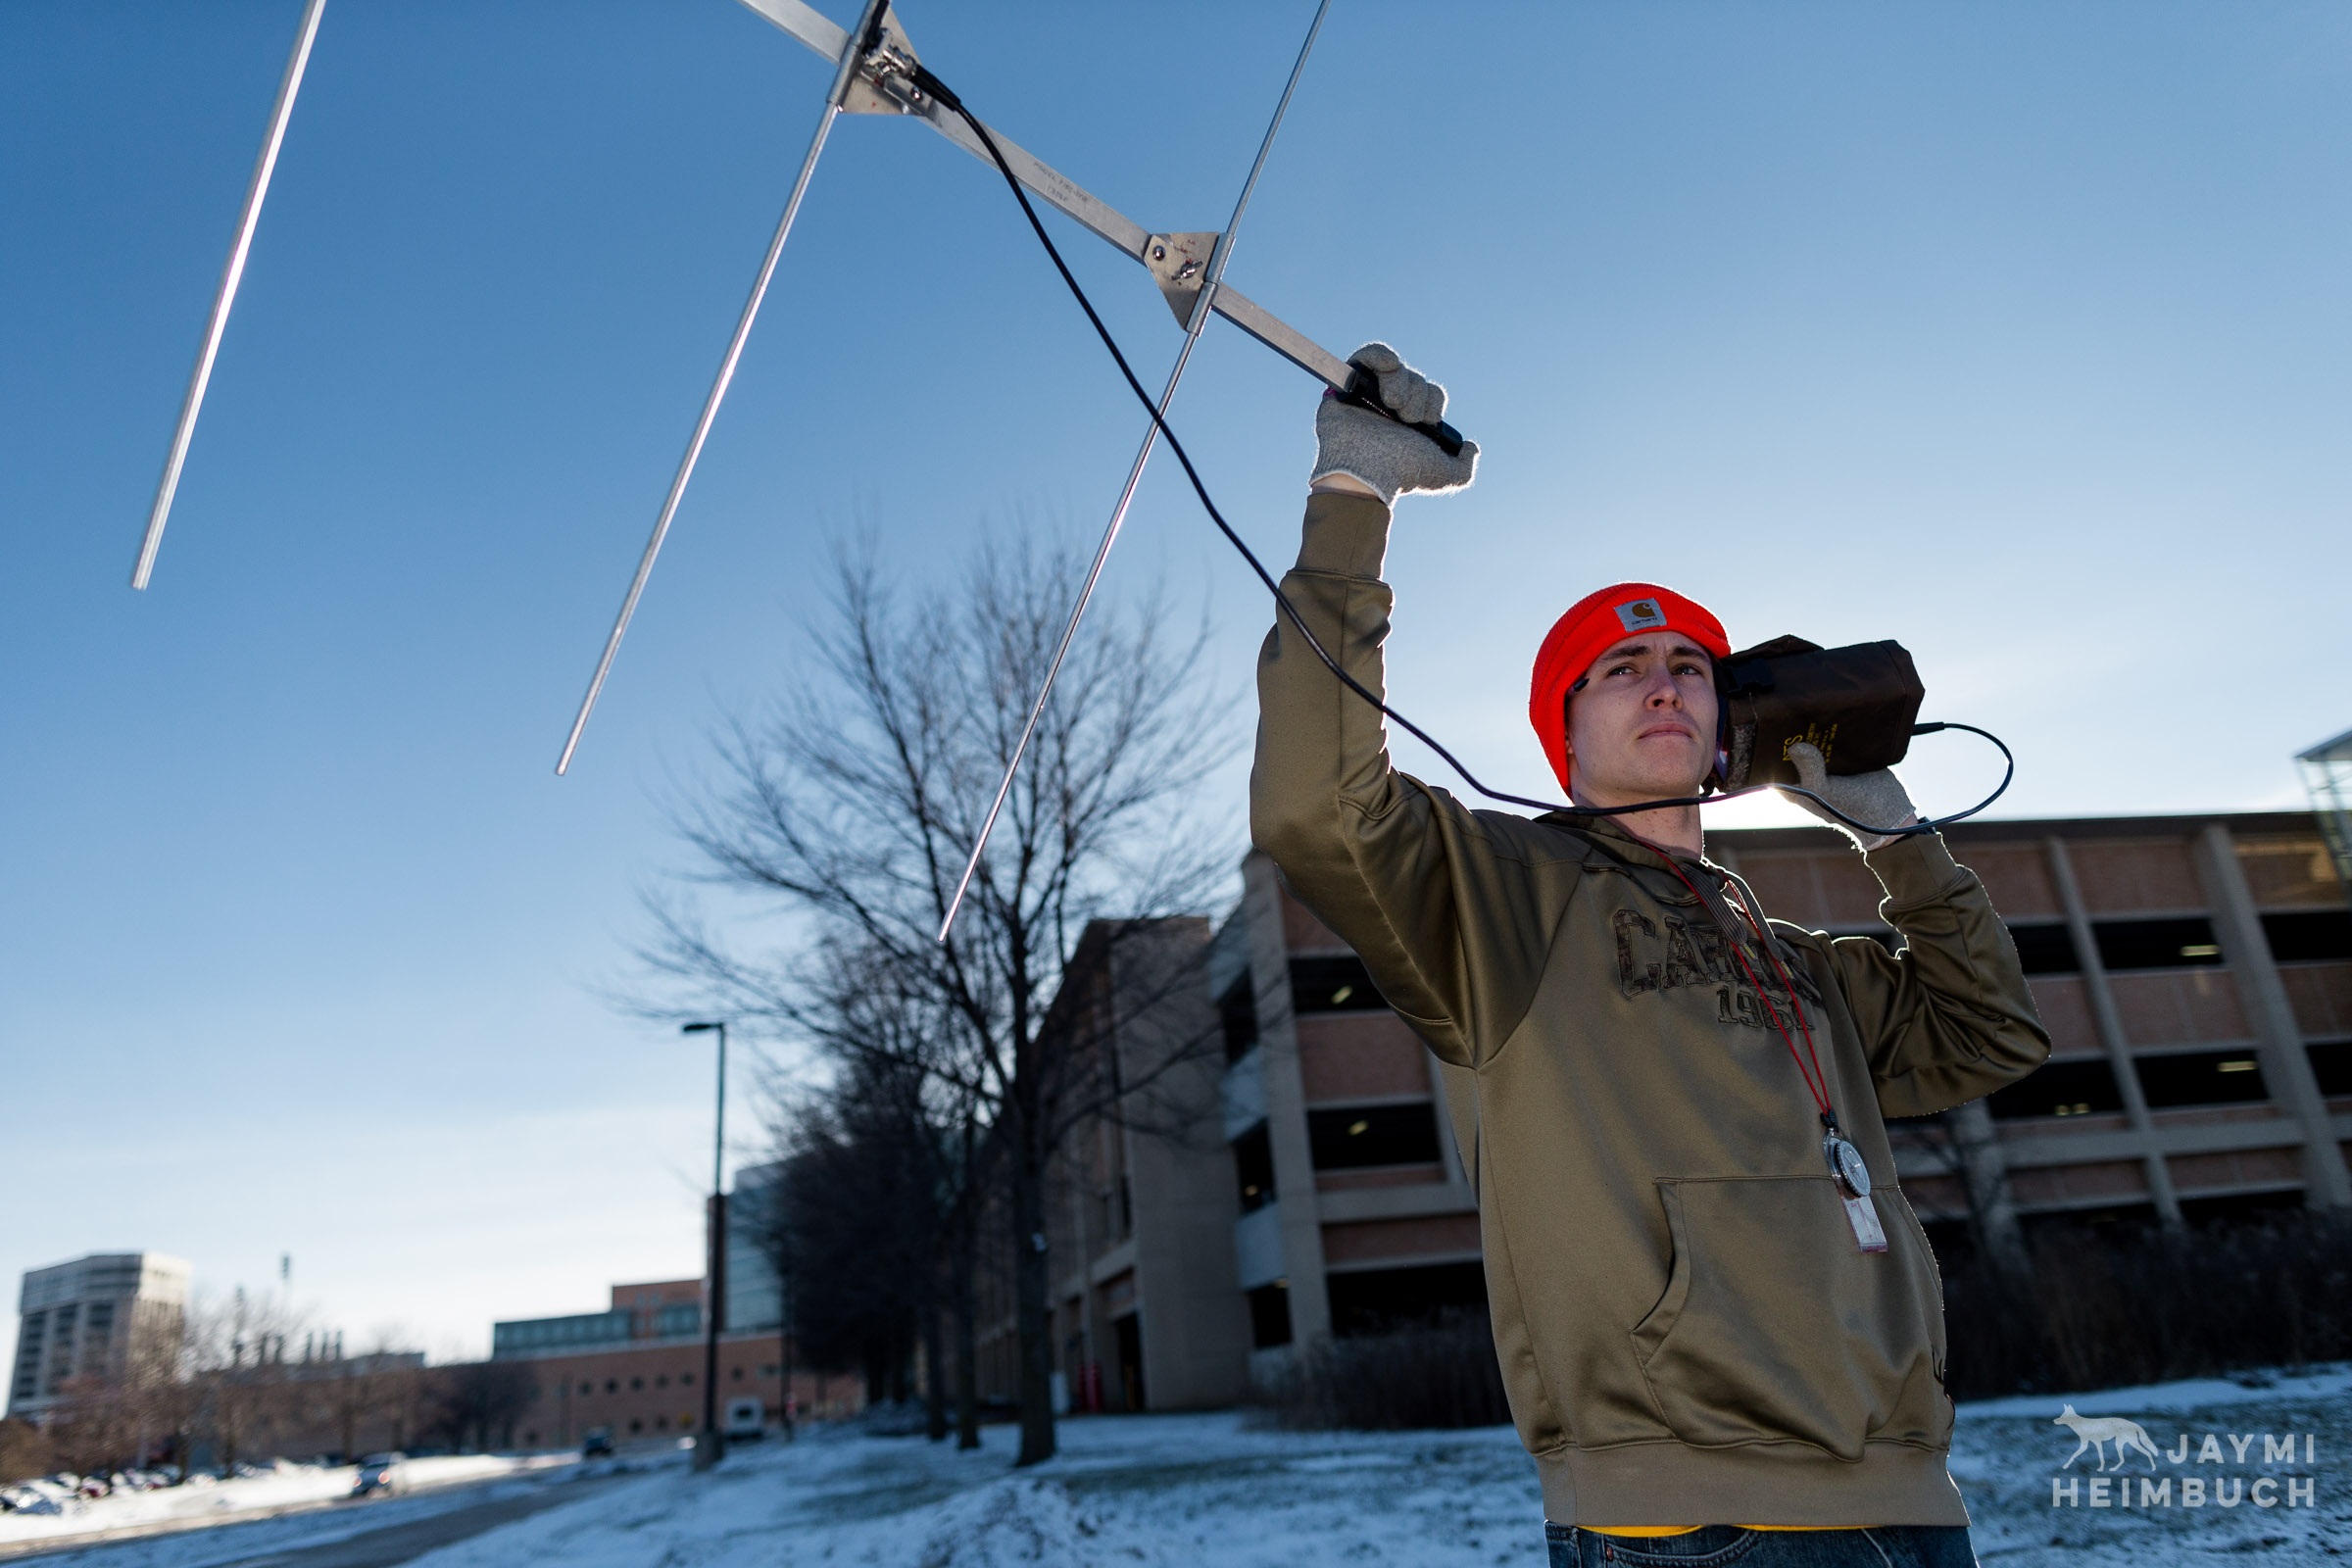 Biology undergraduate student Steven Plesh uses a telemetry pole and receiver to listen for a signal from a nearby radio-collared coyote on the campus of University of Wisconsin-Madison, Madison, Wisconsin.